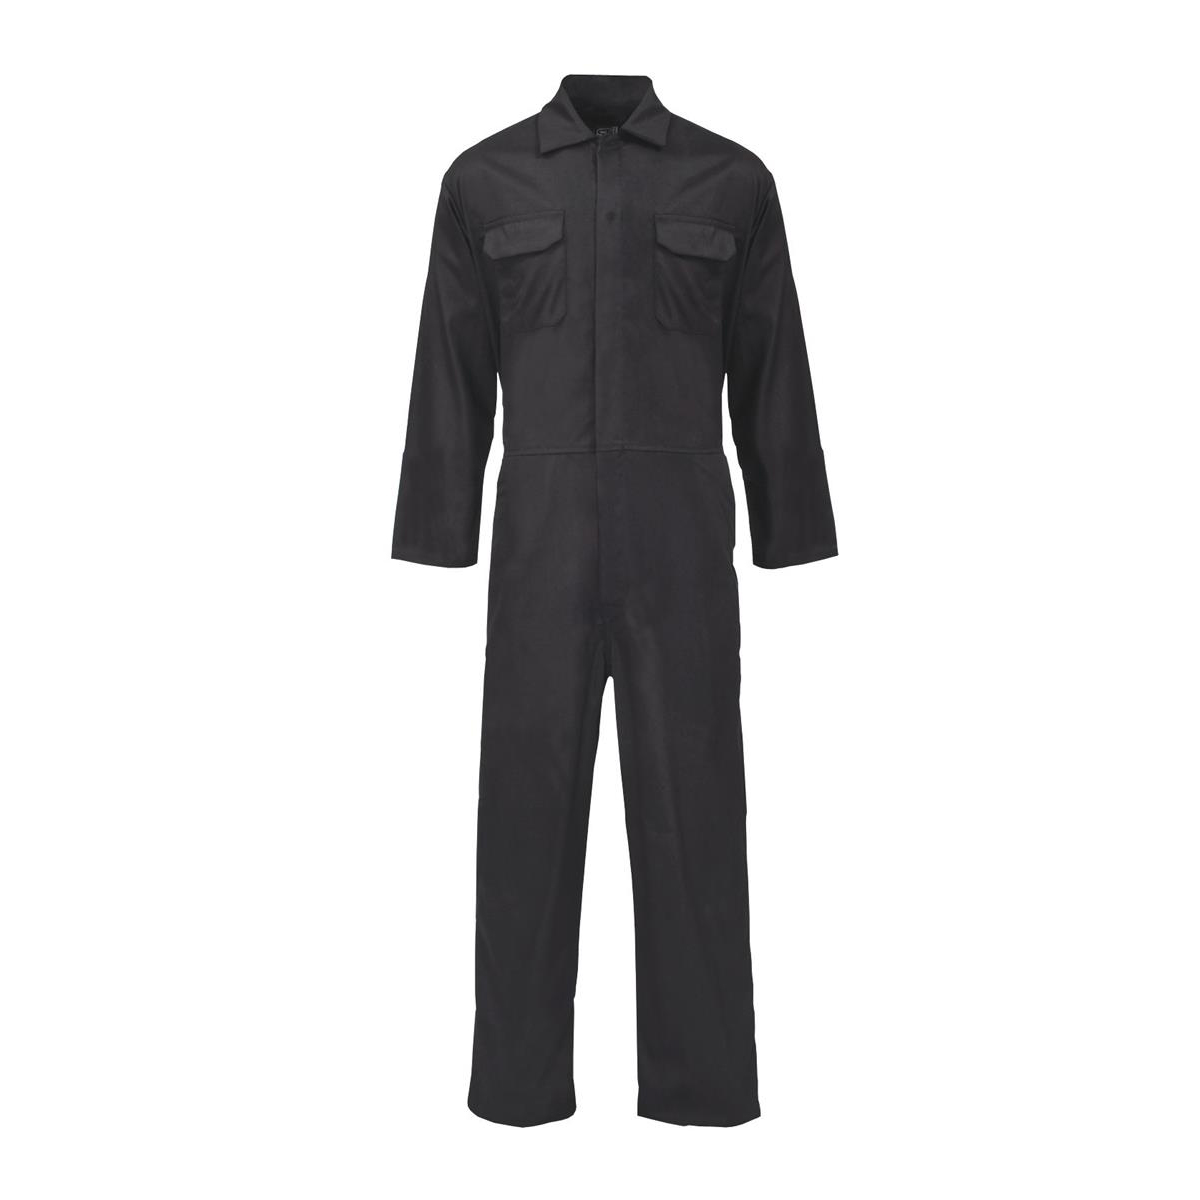 Coveralls / Overalls Coverall Basic with Popper Front Opening Polycotton XLarge Black Ref RPCBSBL48 *Approx 3 Day Leadtime*